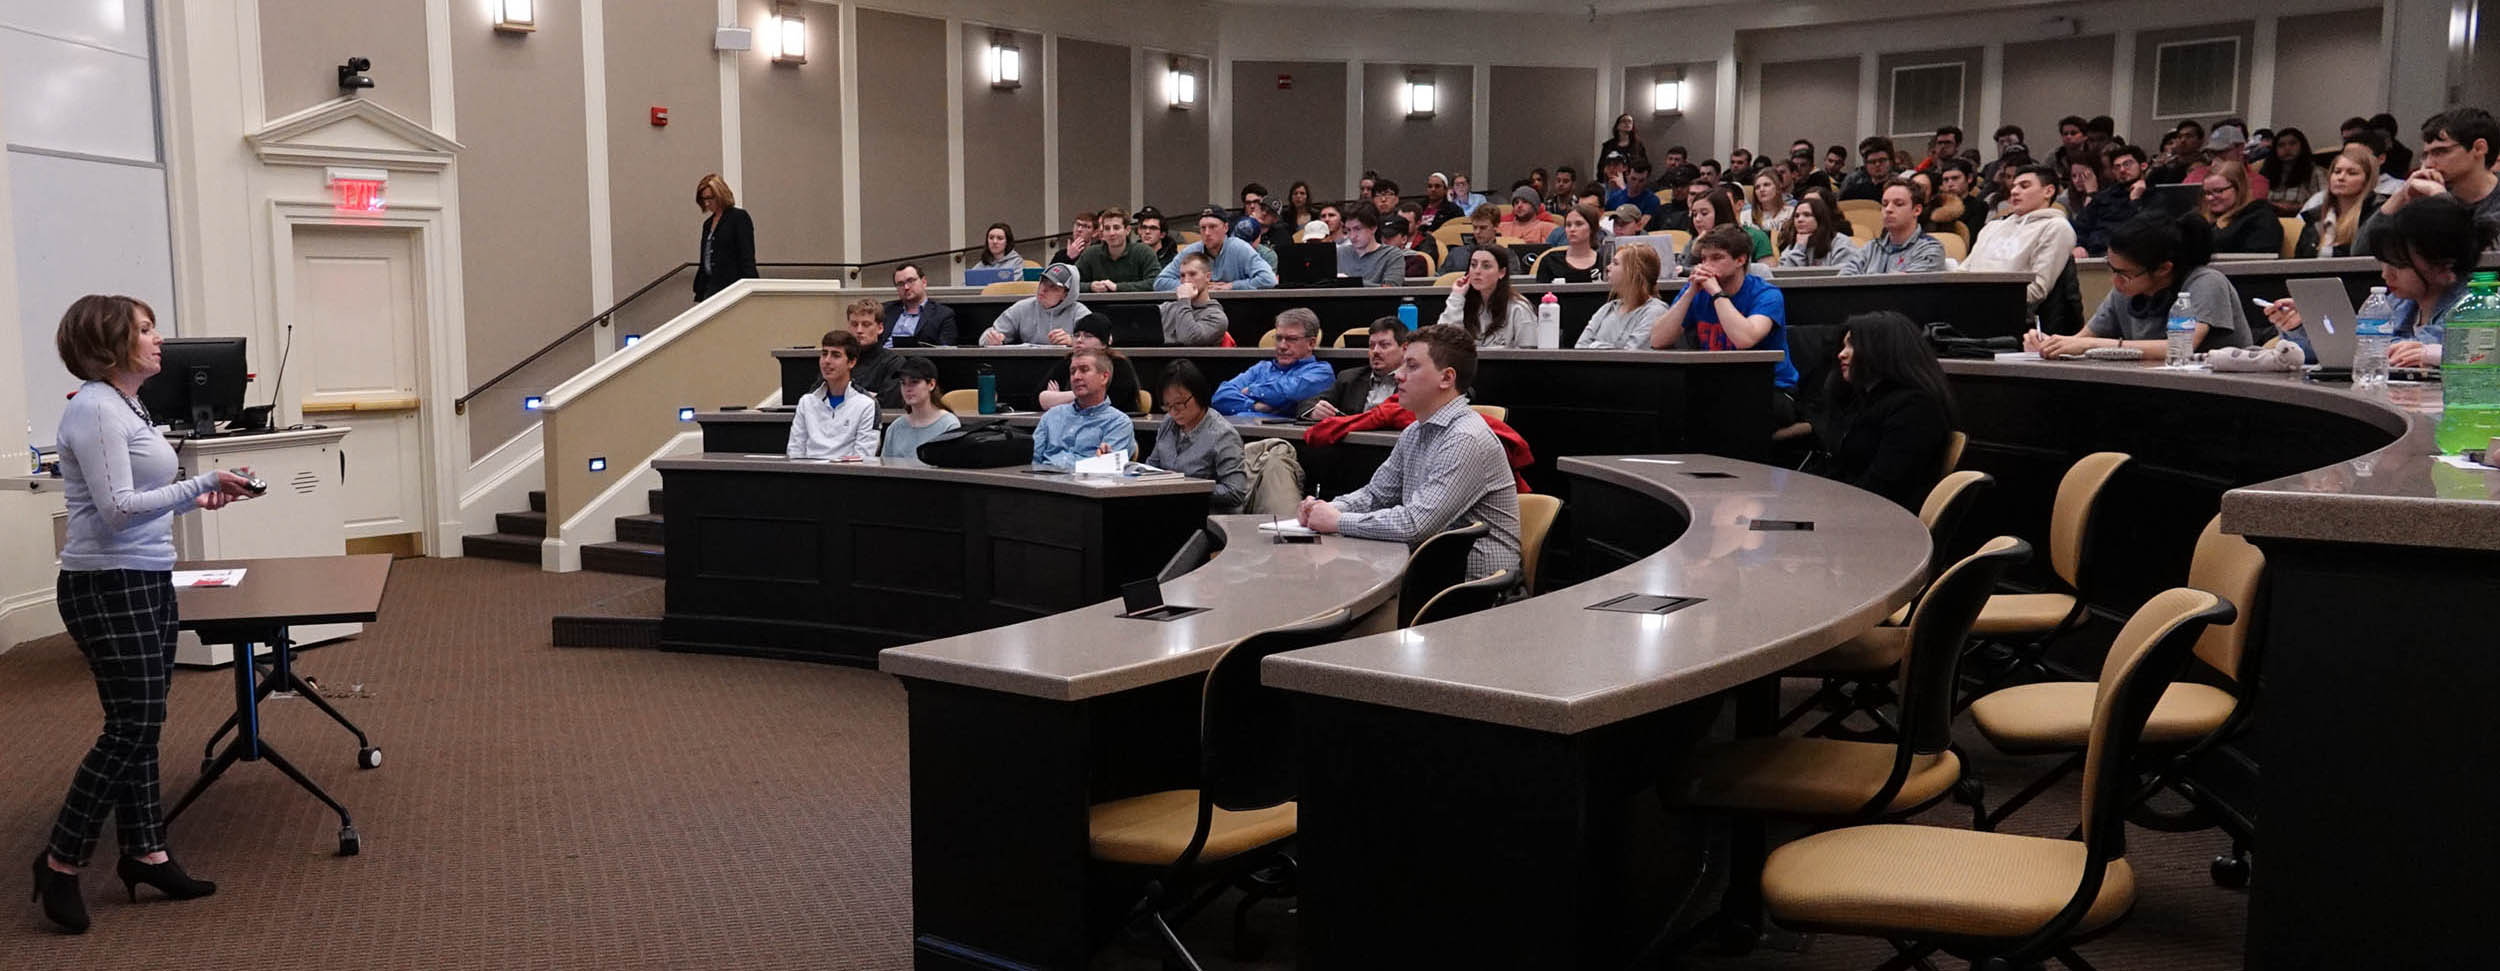 Supply chain speaker in Taylor Auditorium